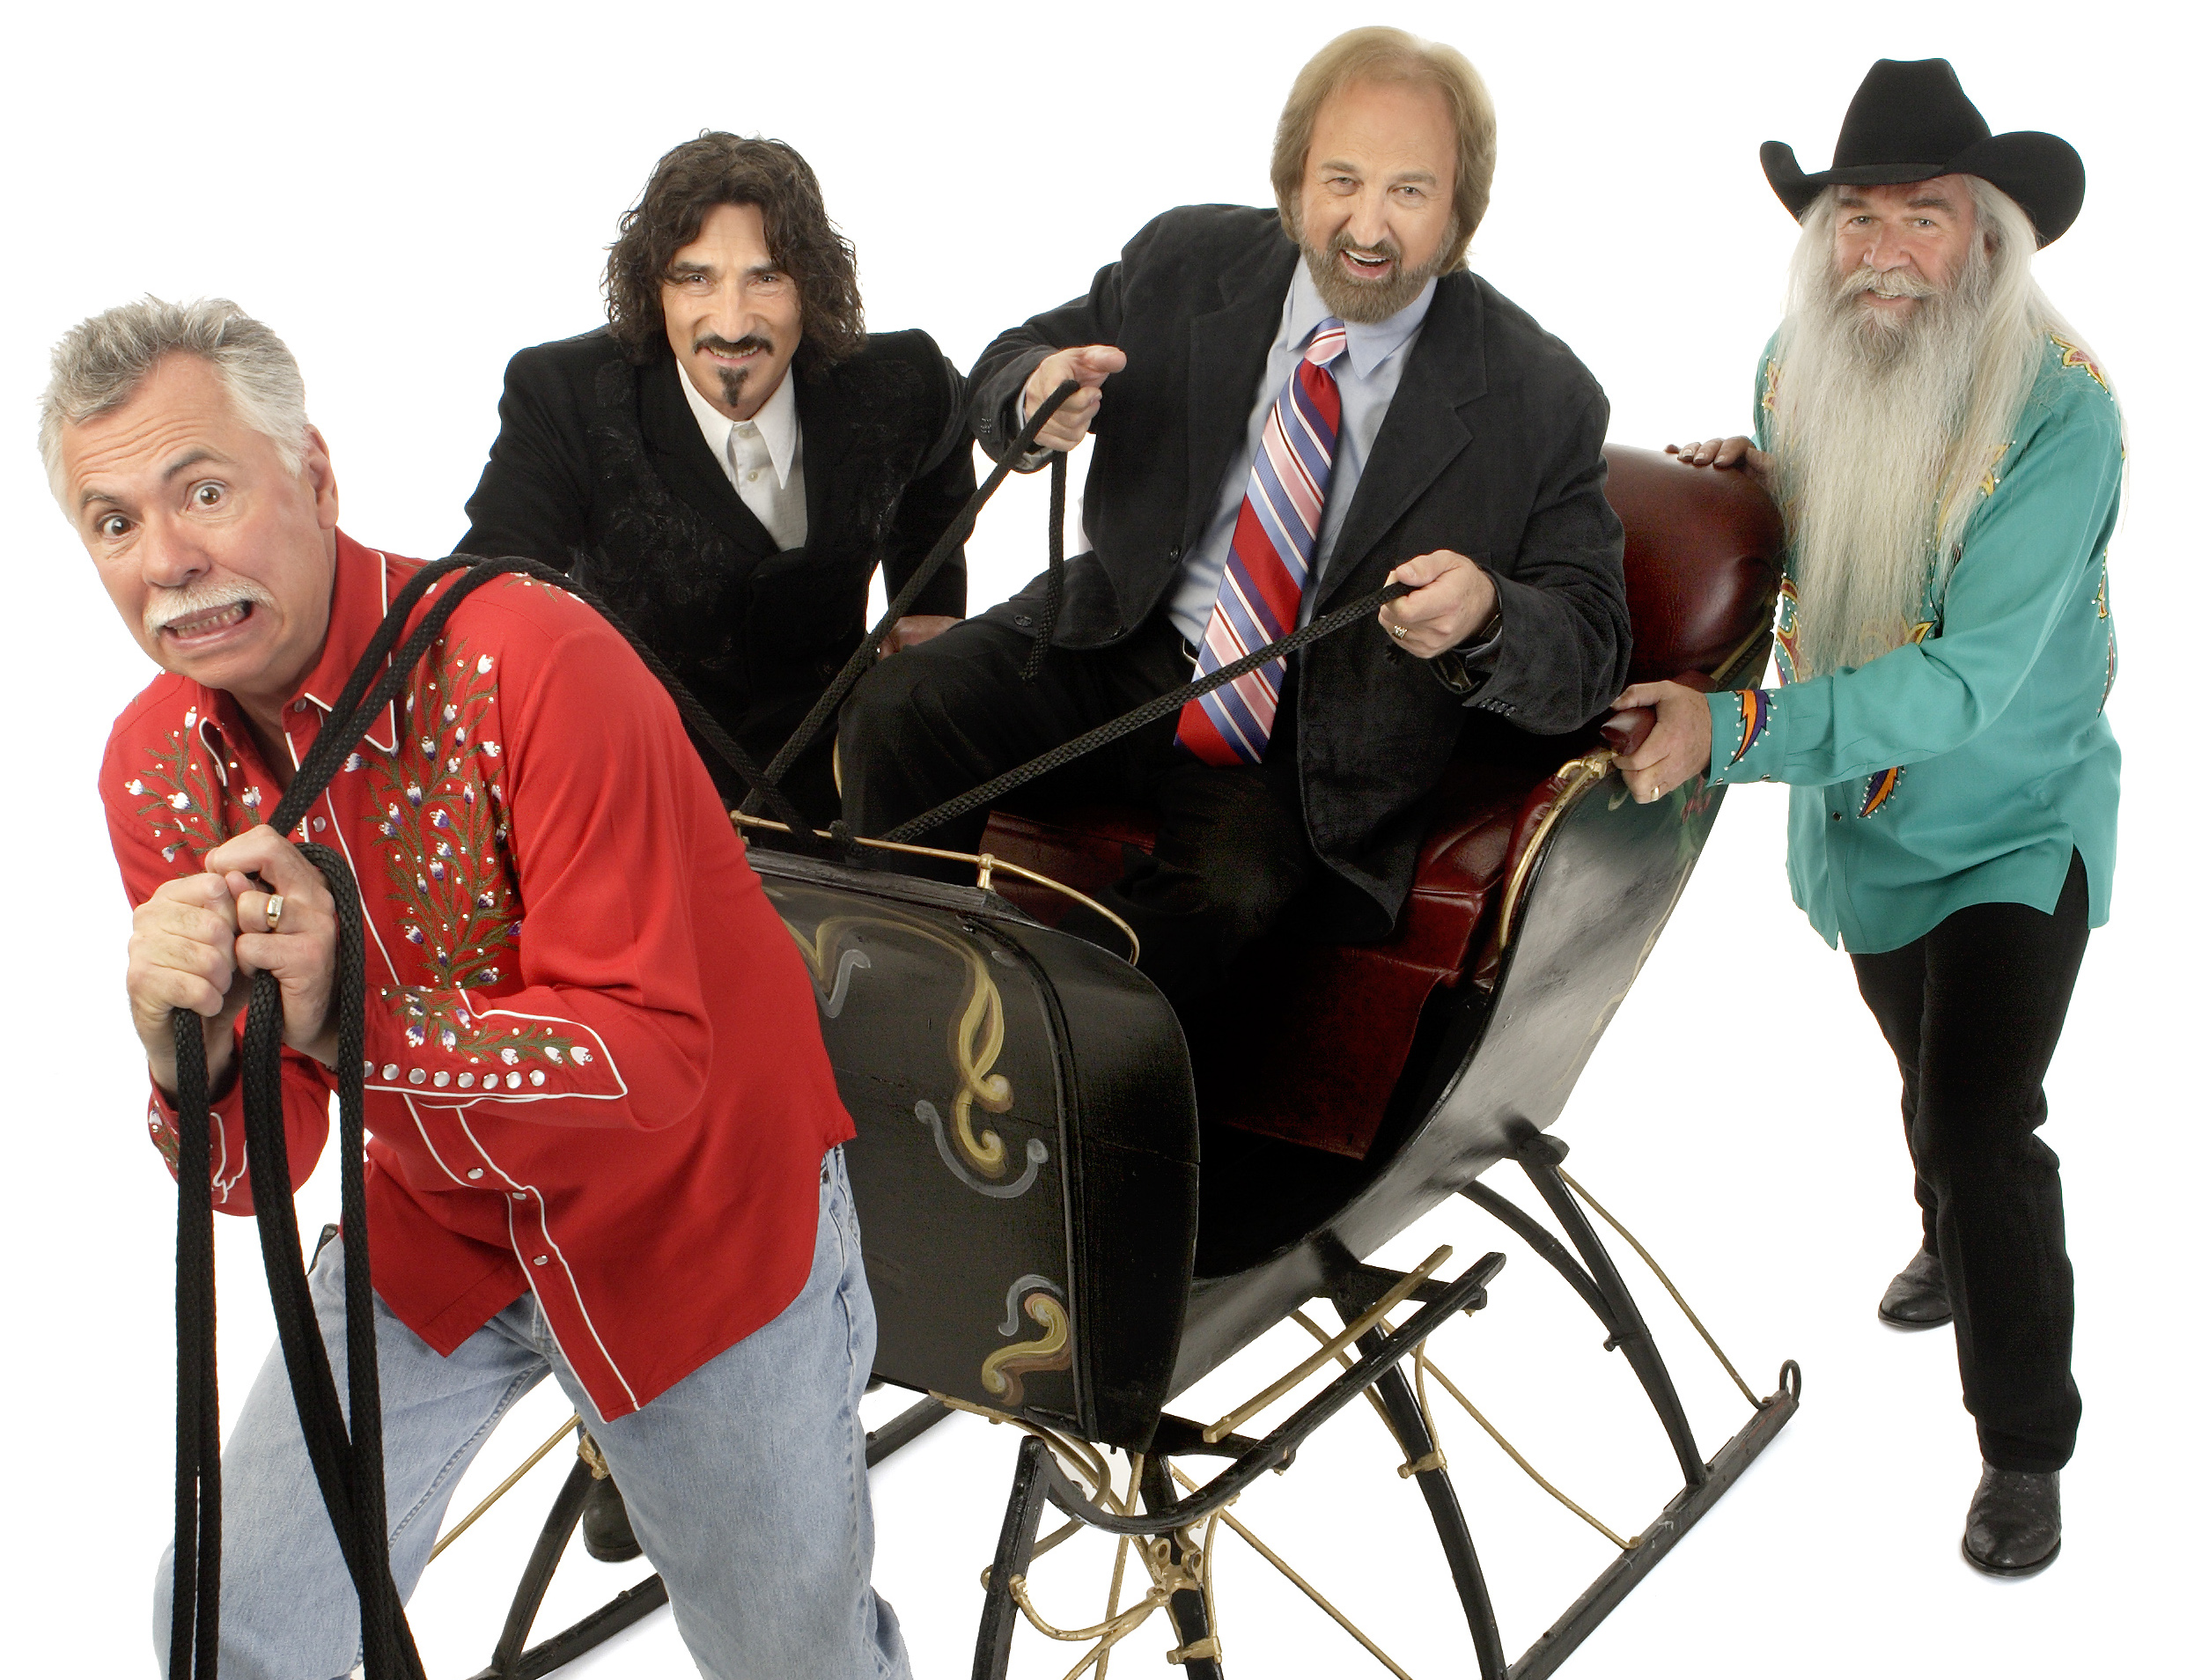 The Oak Ridge Boys Christmas Photo |